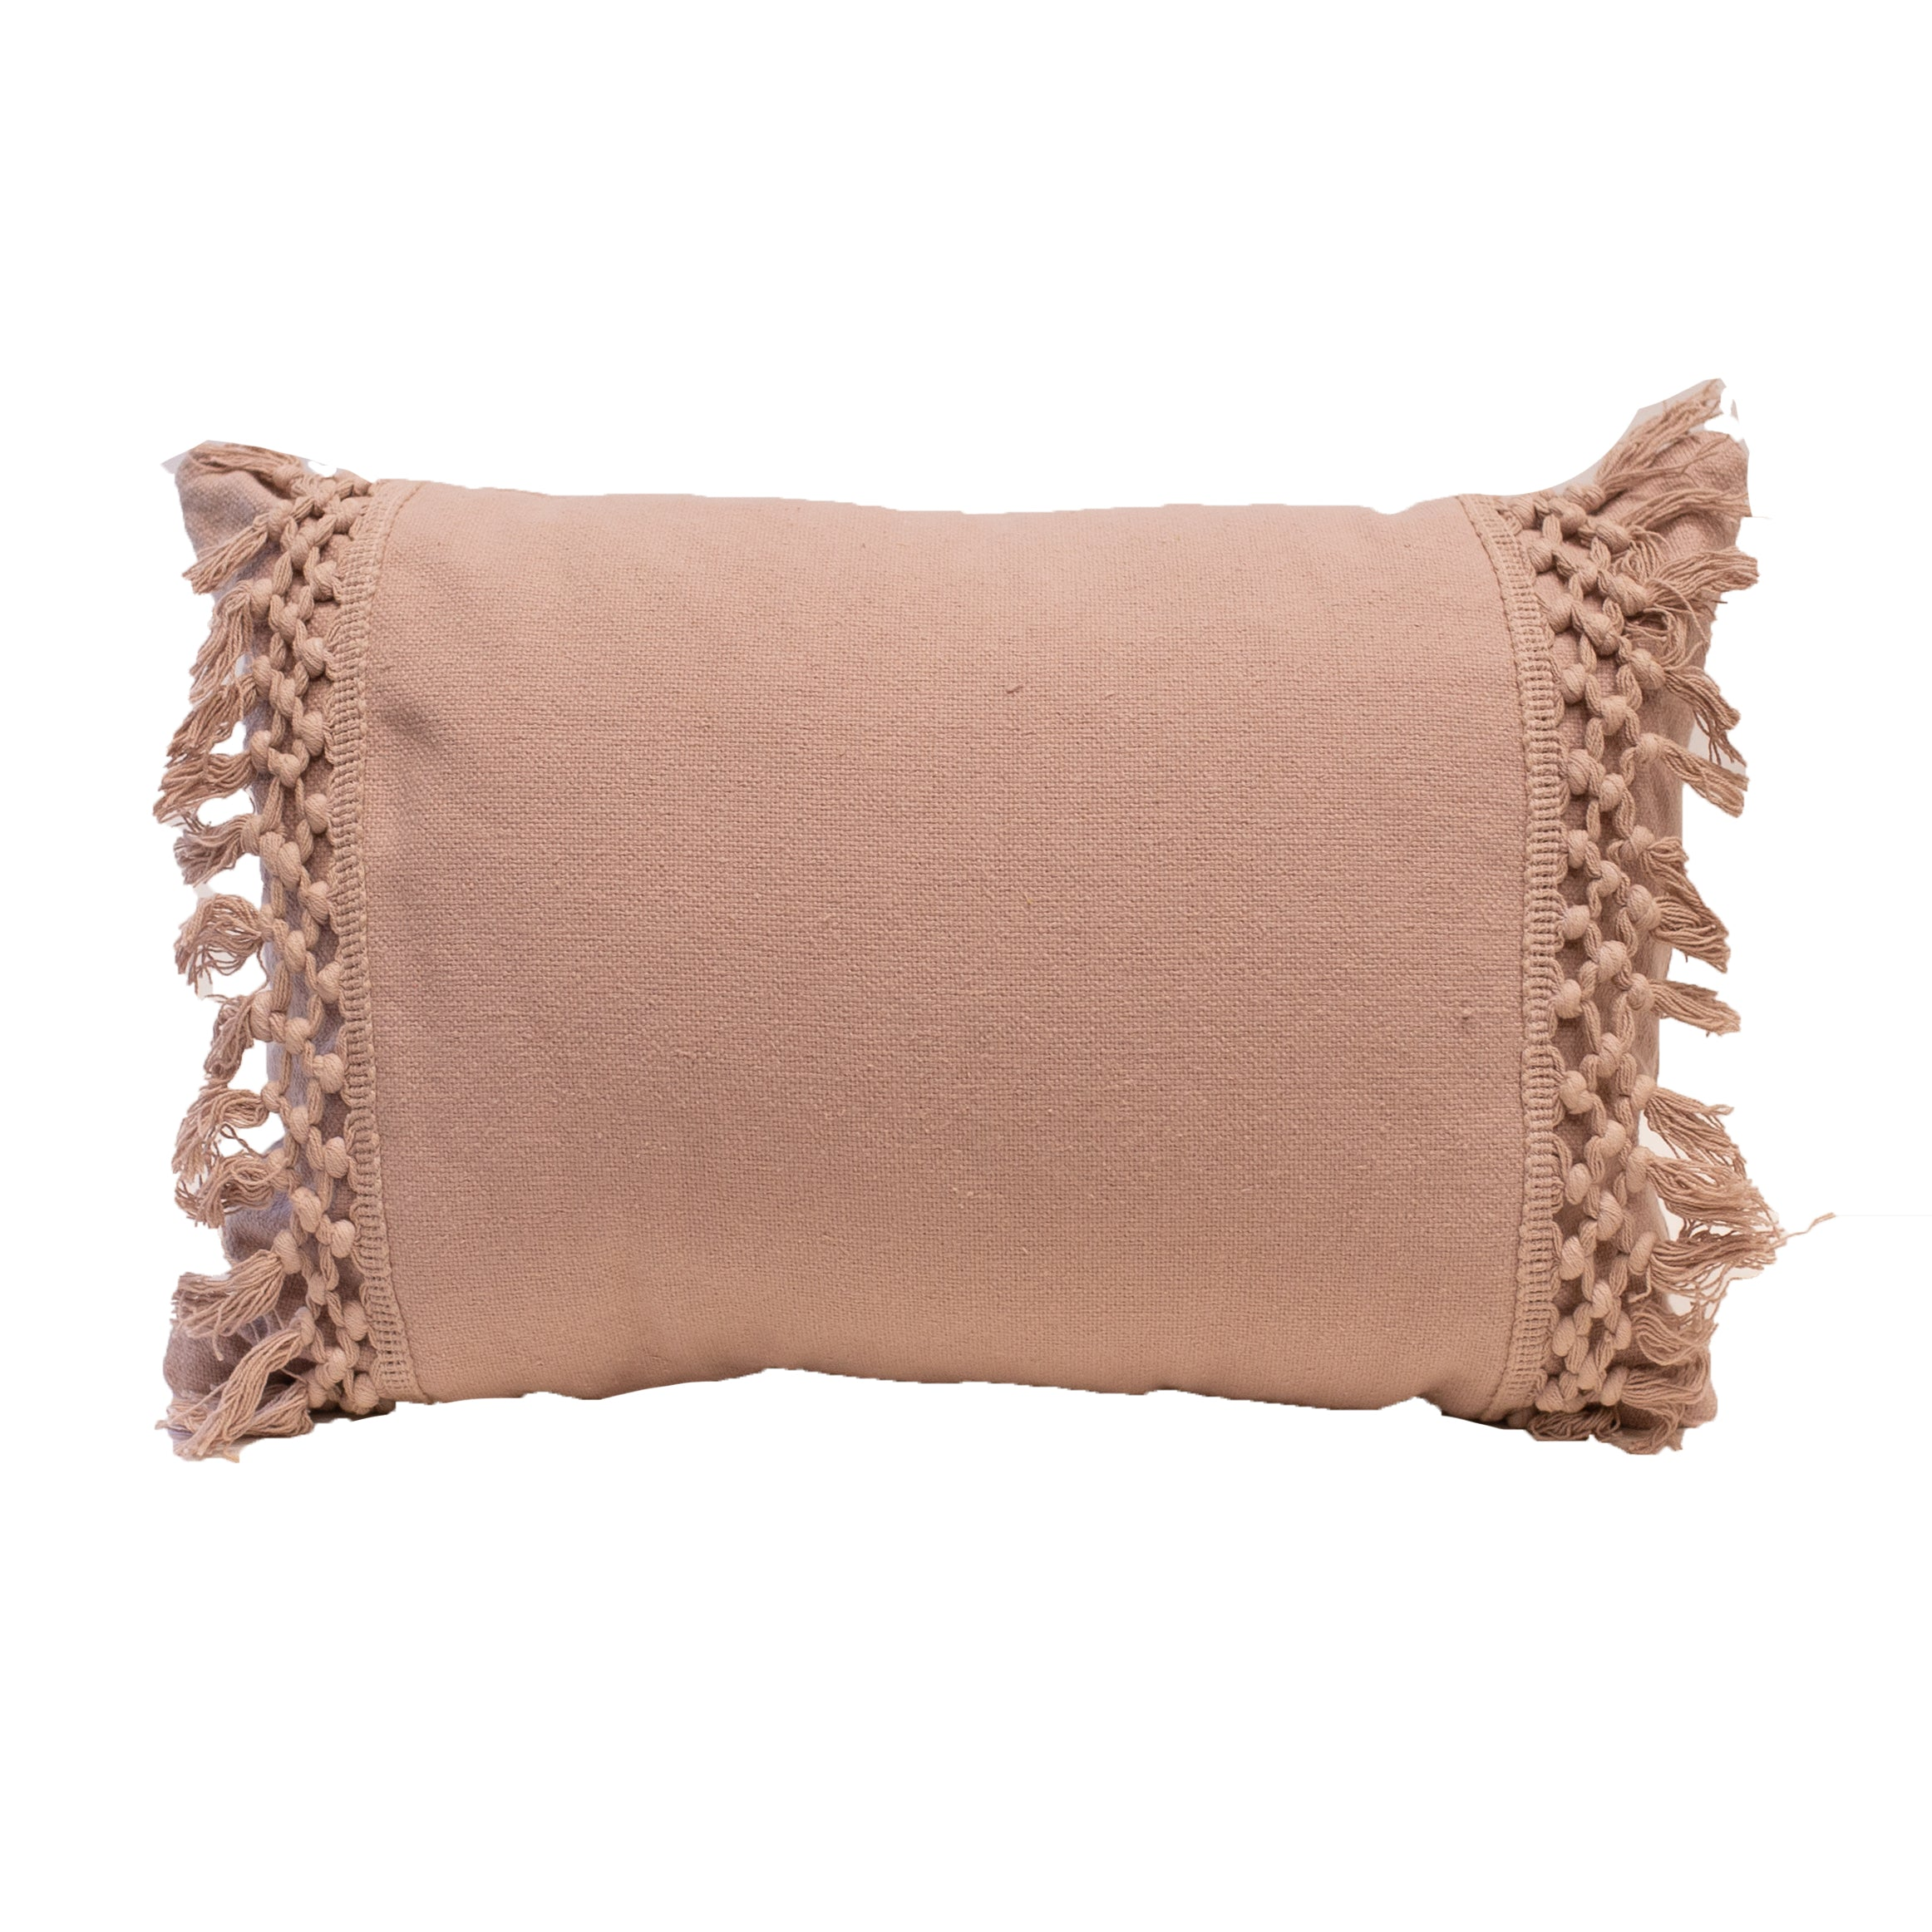 Pillow (Dusty Rose)